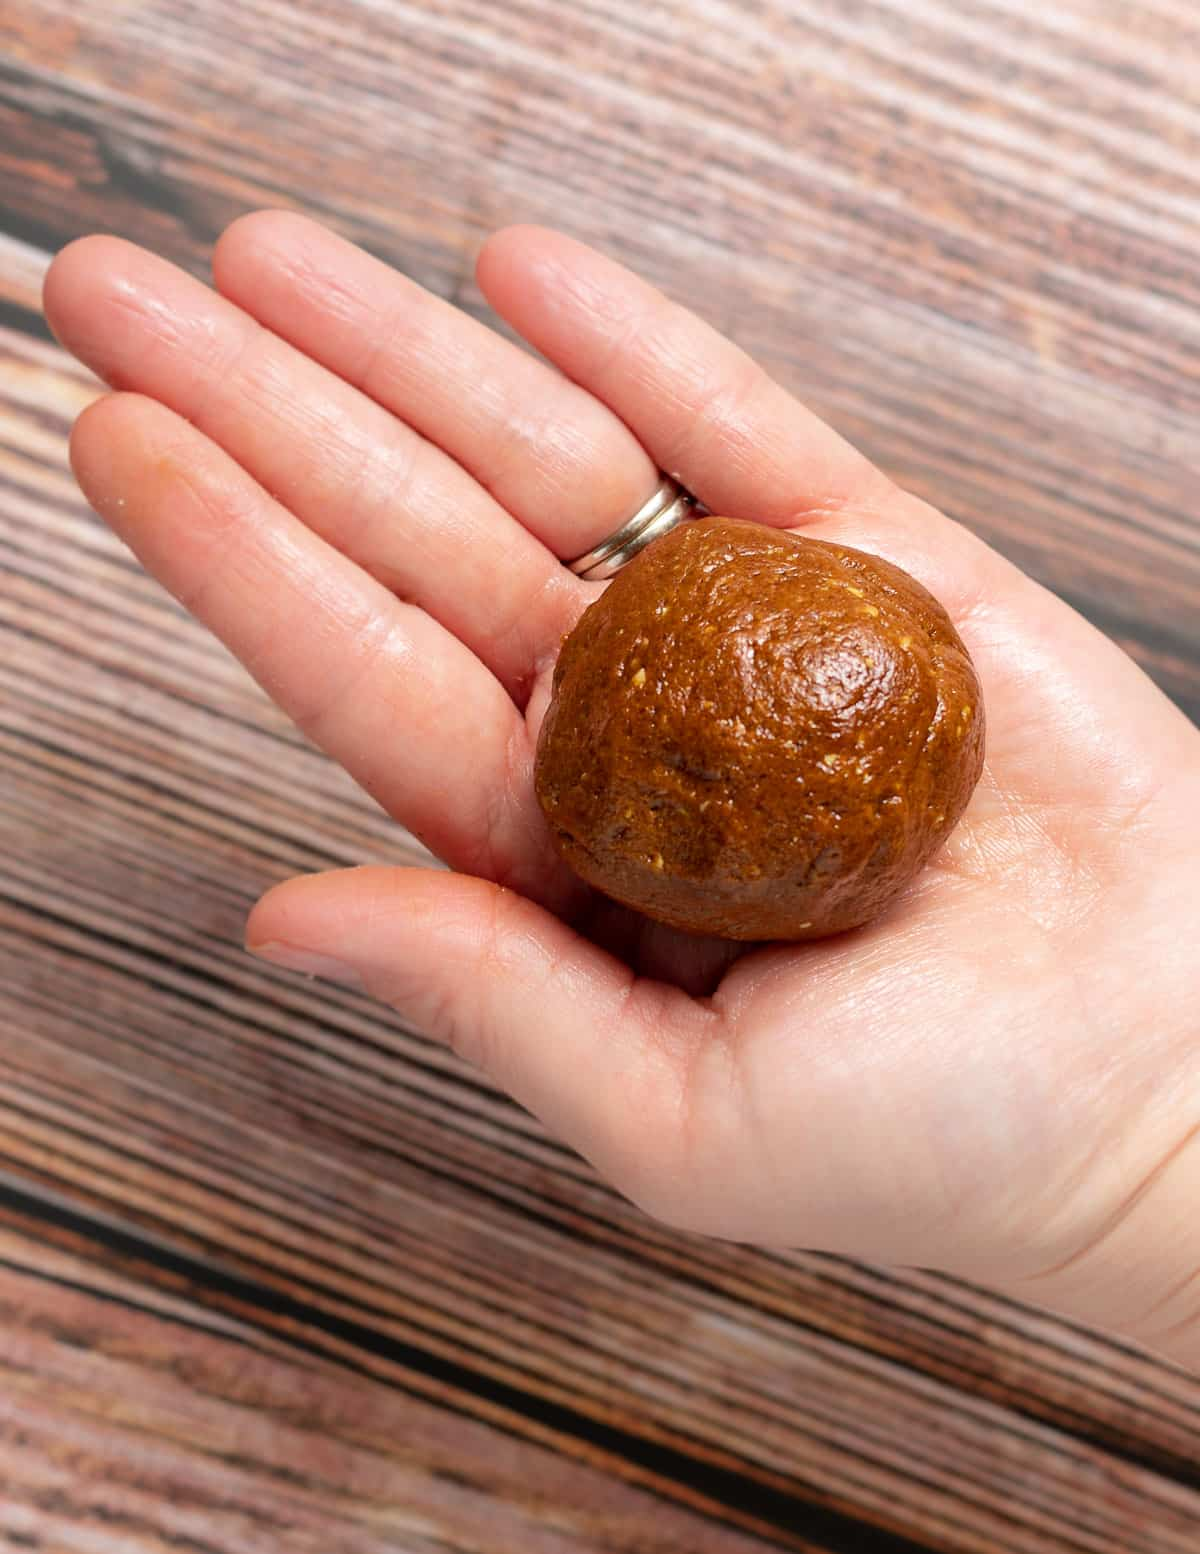 a cookie dough ball on a hand